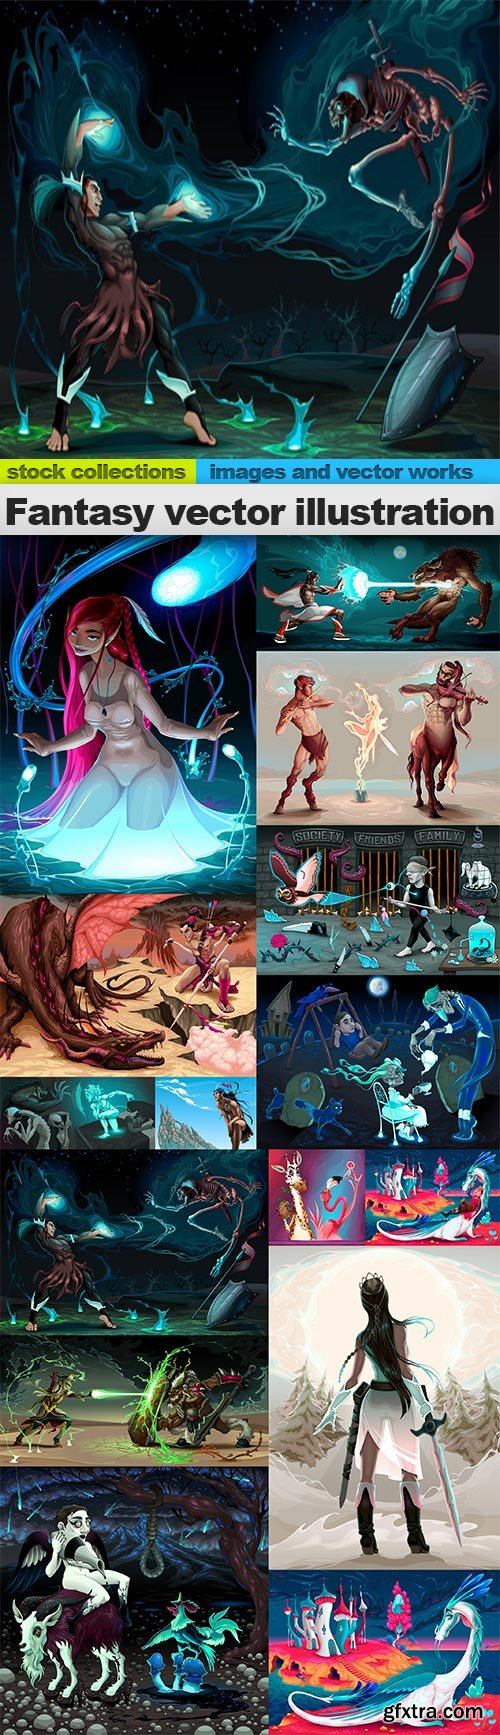 Fantasy vector illustration, 15 x EPS